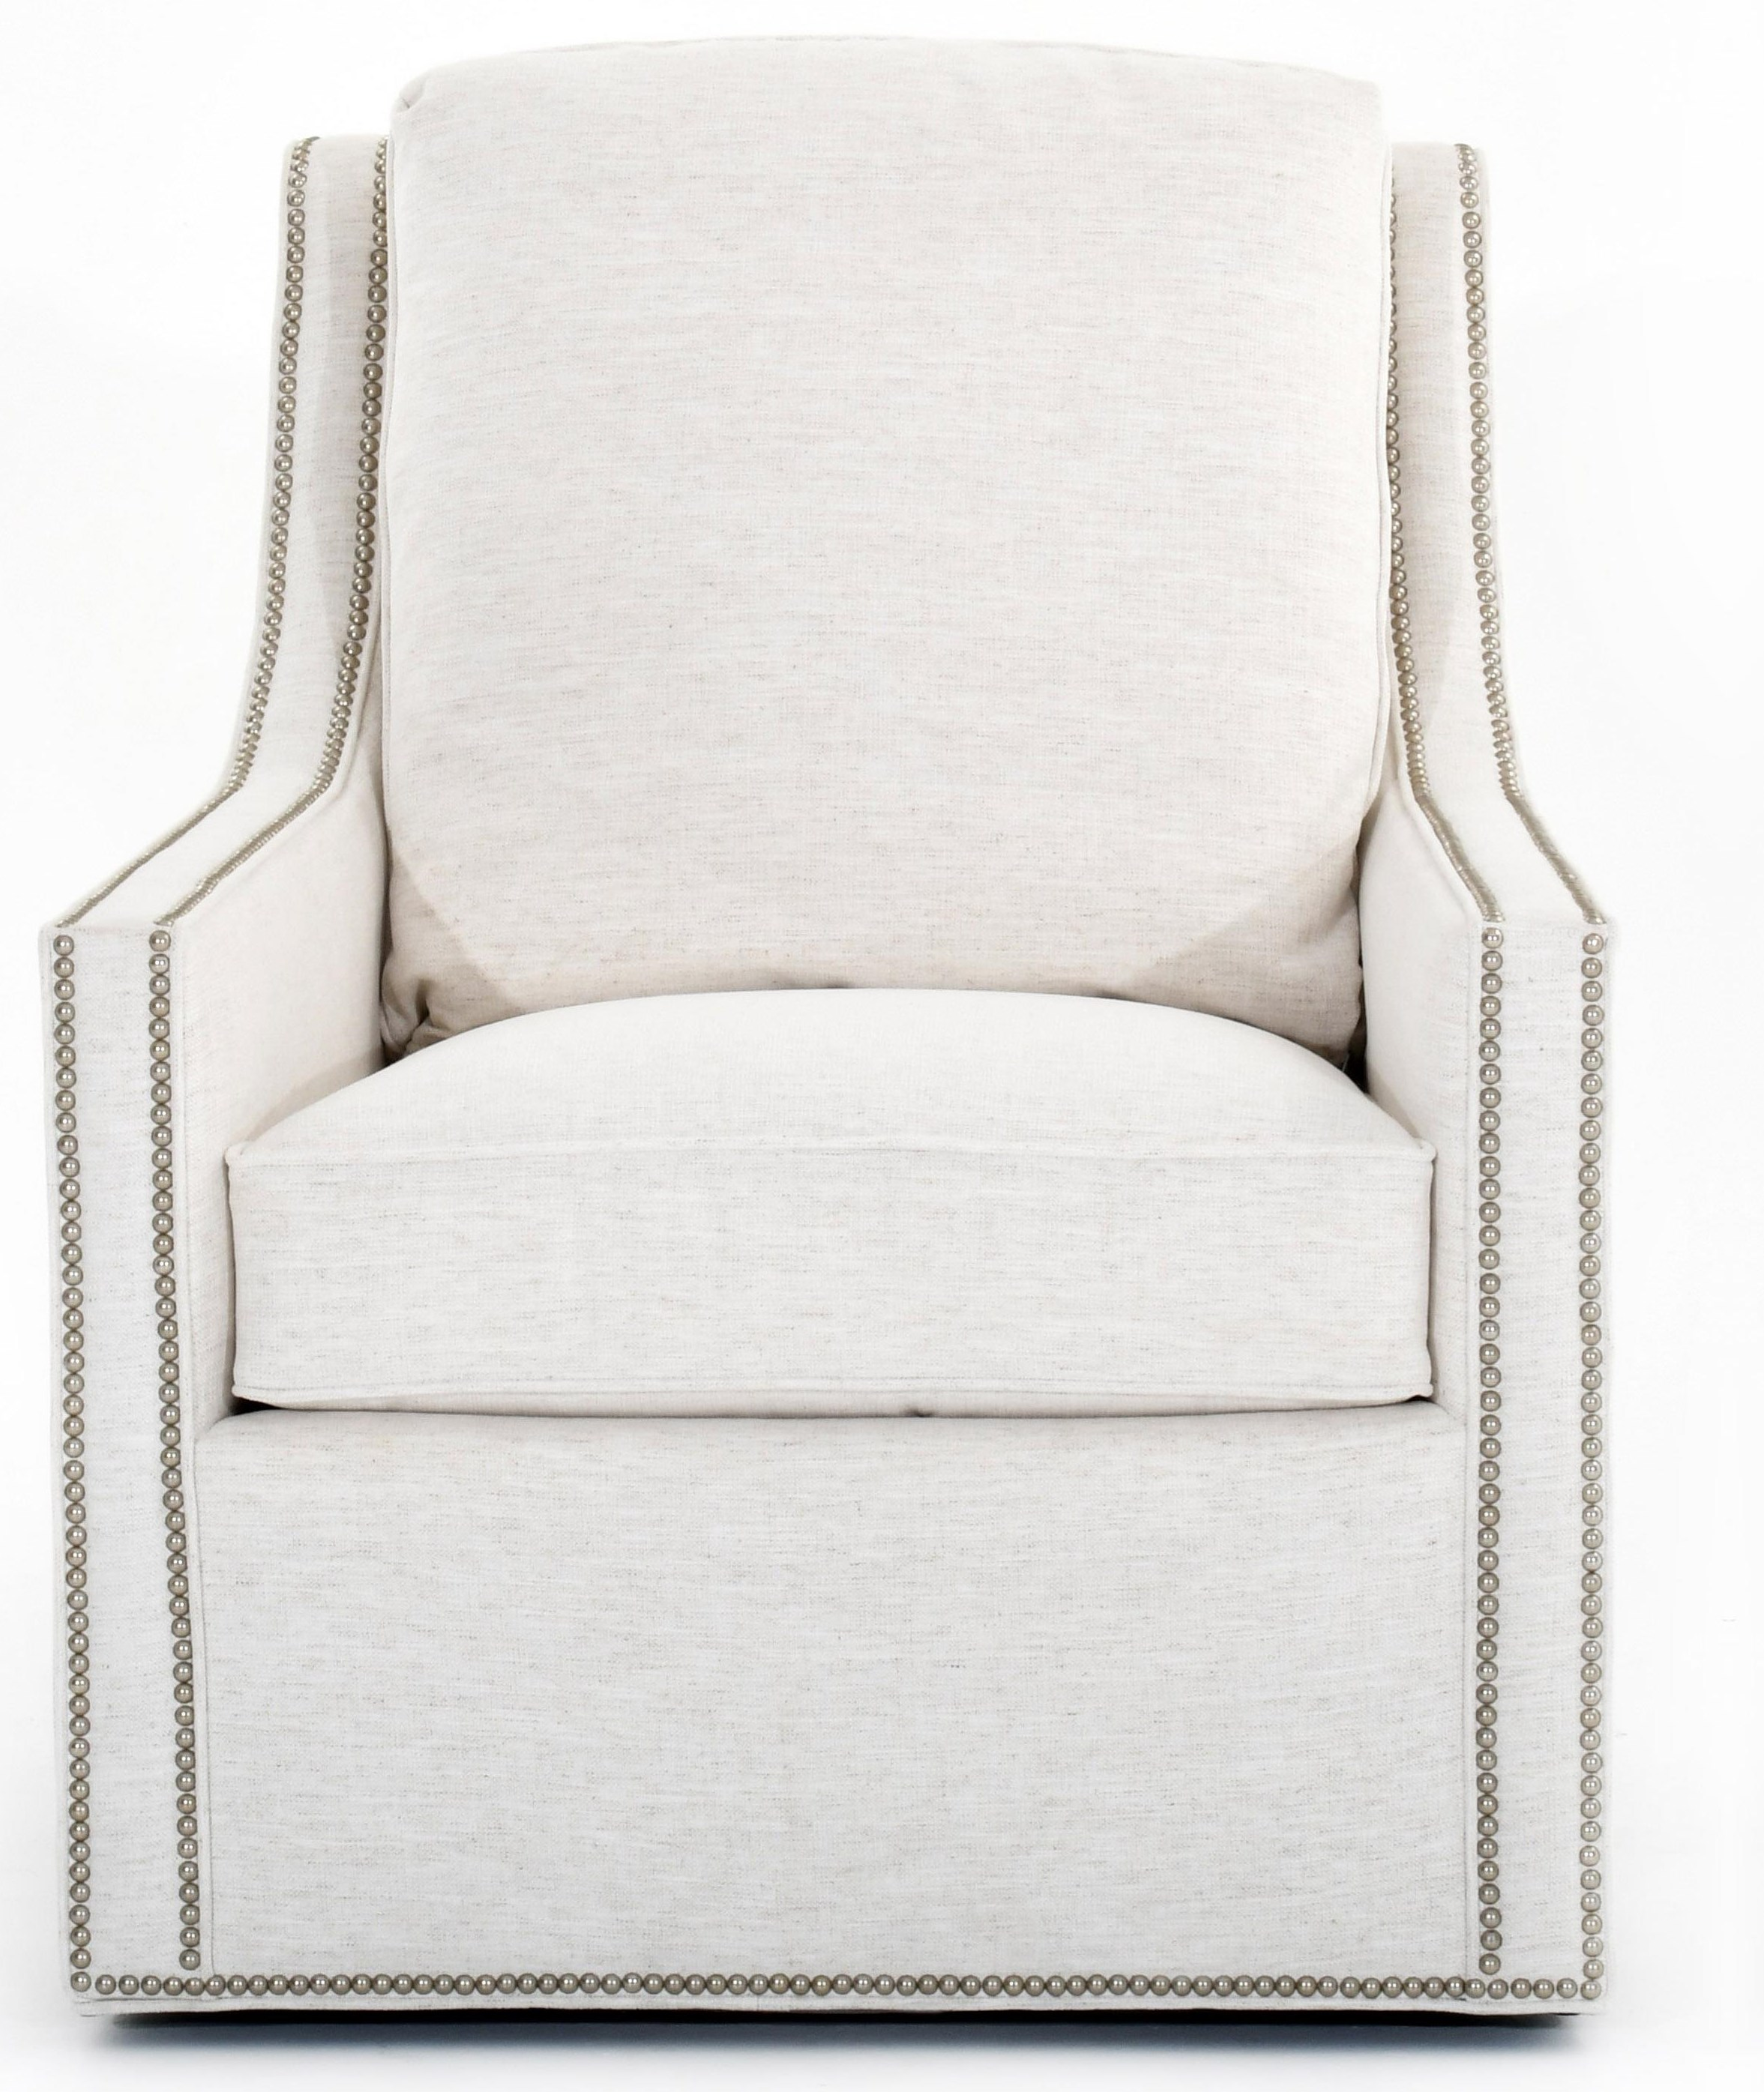 Tori Swivel Chair by Century at Baer's Furniture